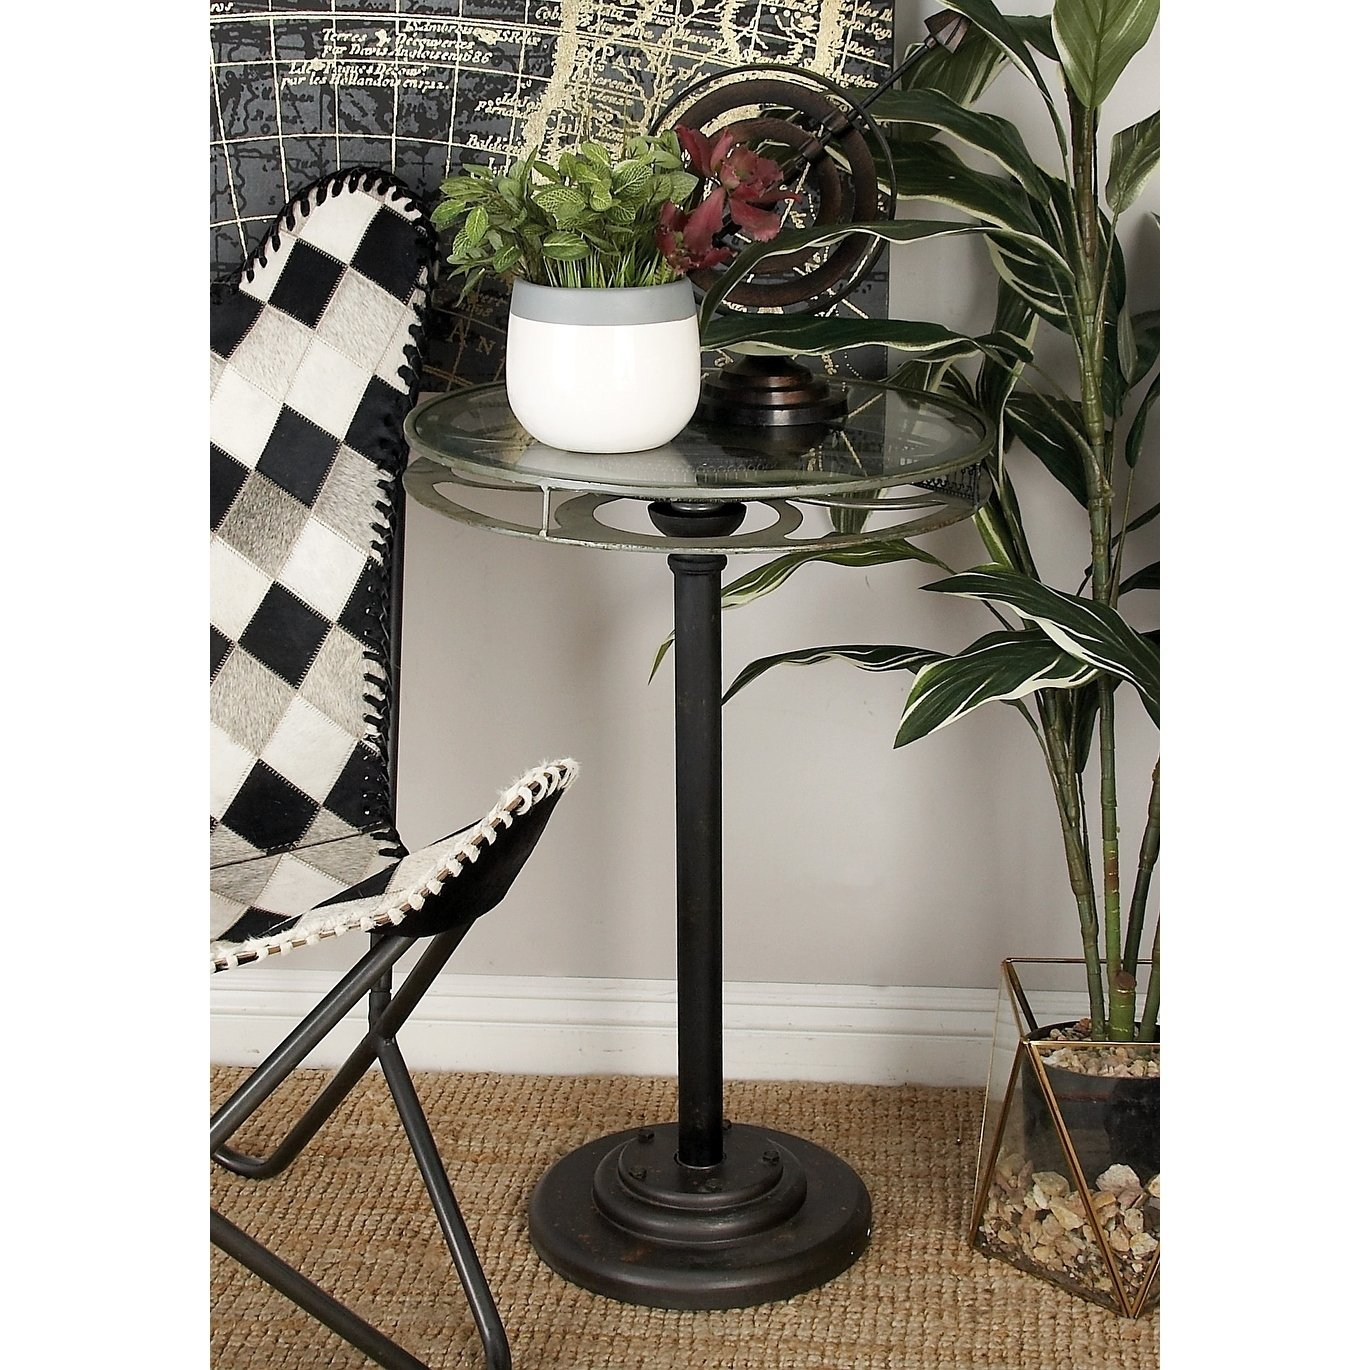 industrial inch black movie reel accent table studio umbrella free shipping today ikea garden furniture metal and glass patio nautical bedroom decor linen mats small with folding